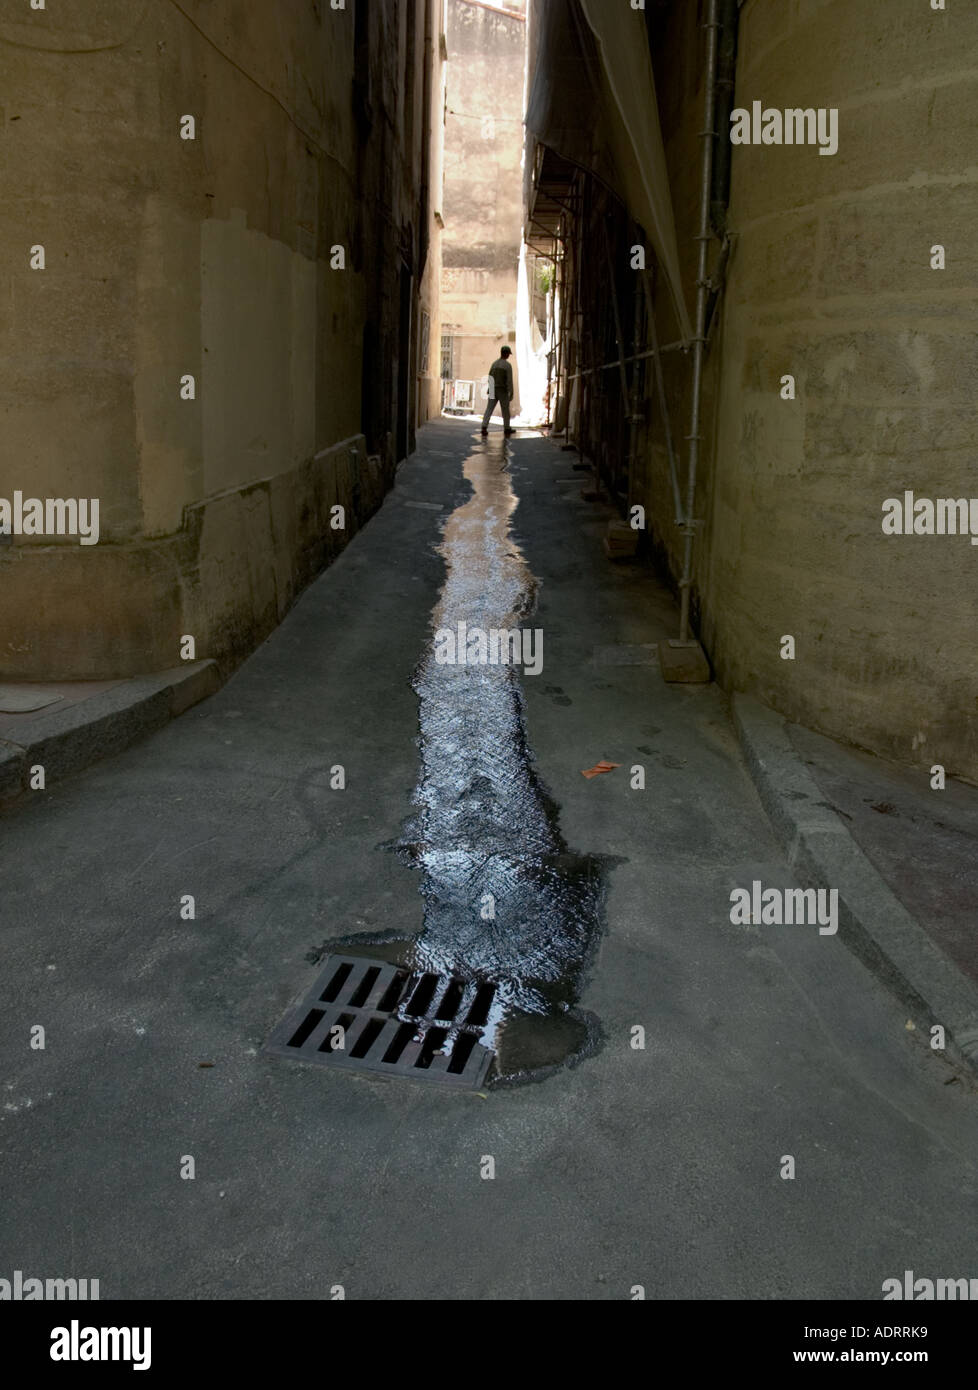 A lone man walks though a water leak in a dark alleyway - Stock Image